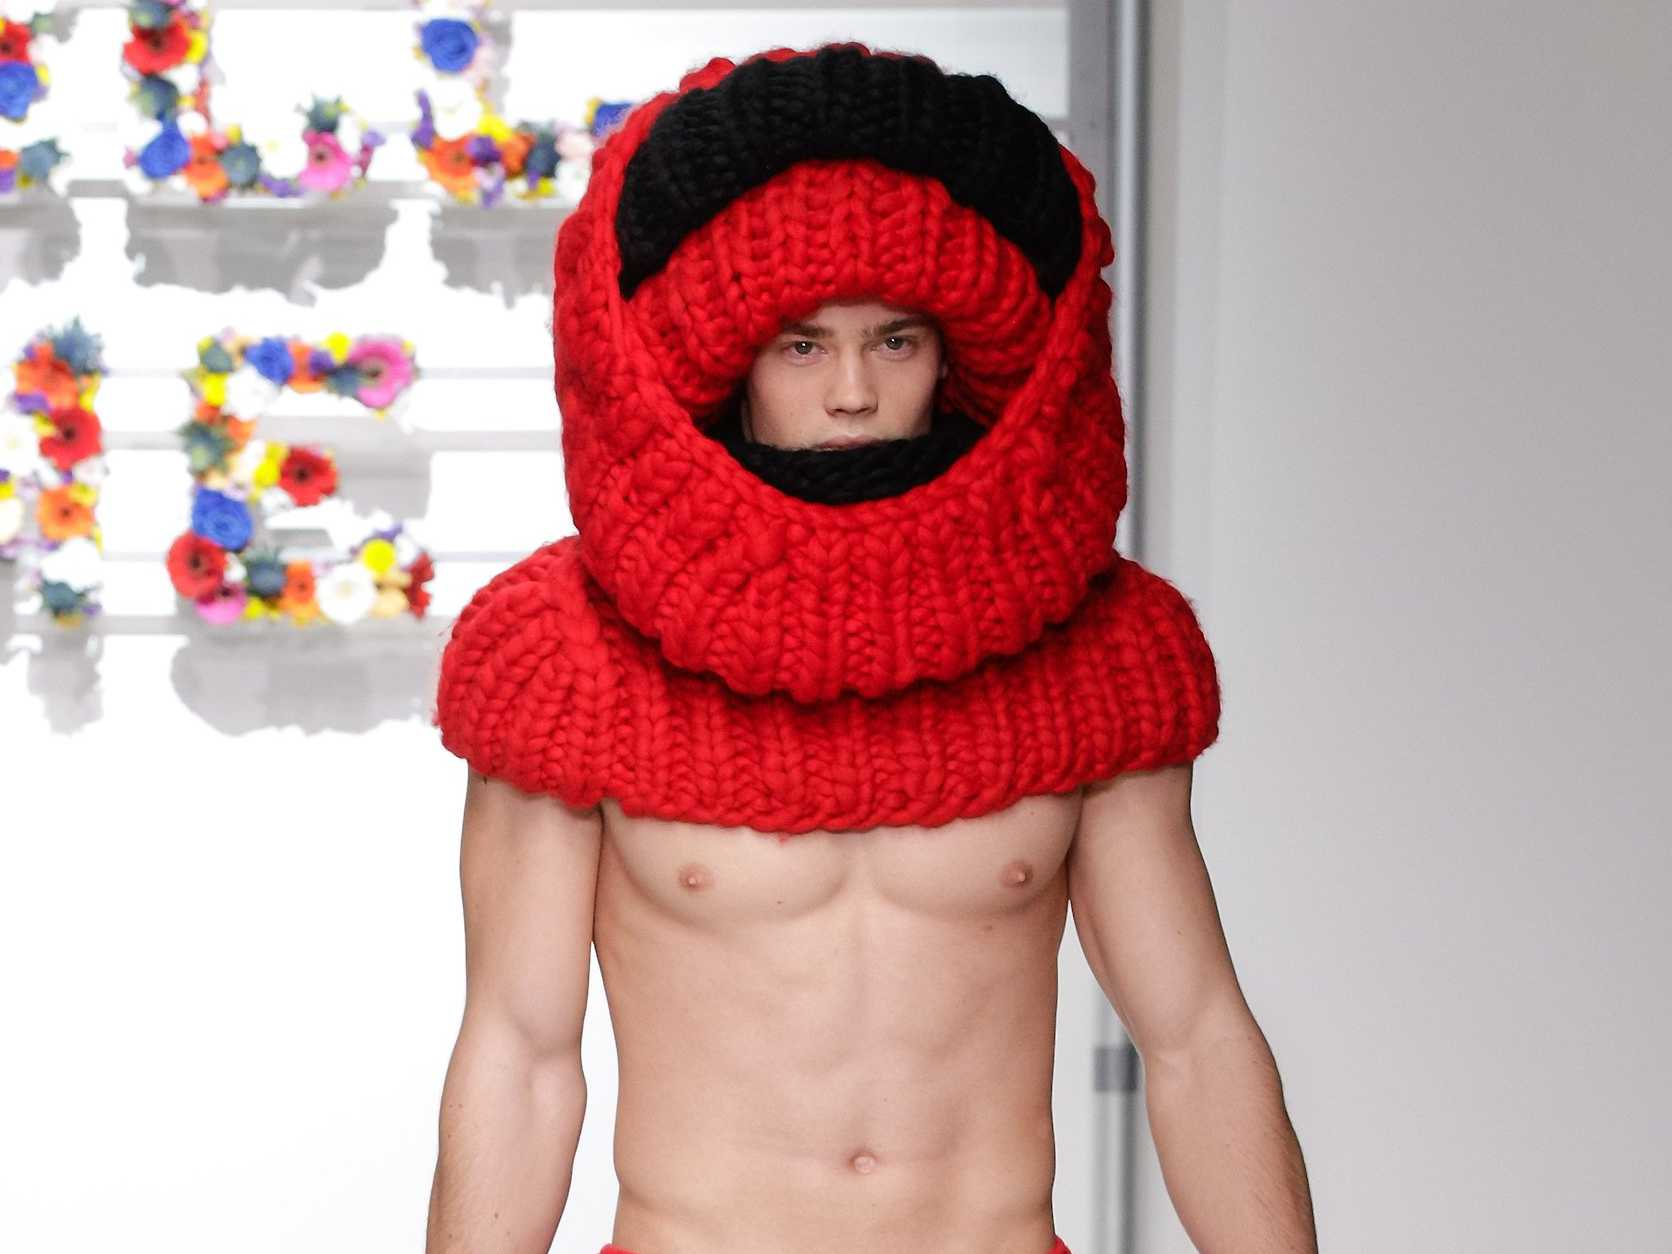 Dutch designer Pietre Van Pietre knitted right up until the last minute, but he just couldn't get the job done.